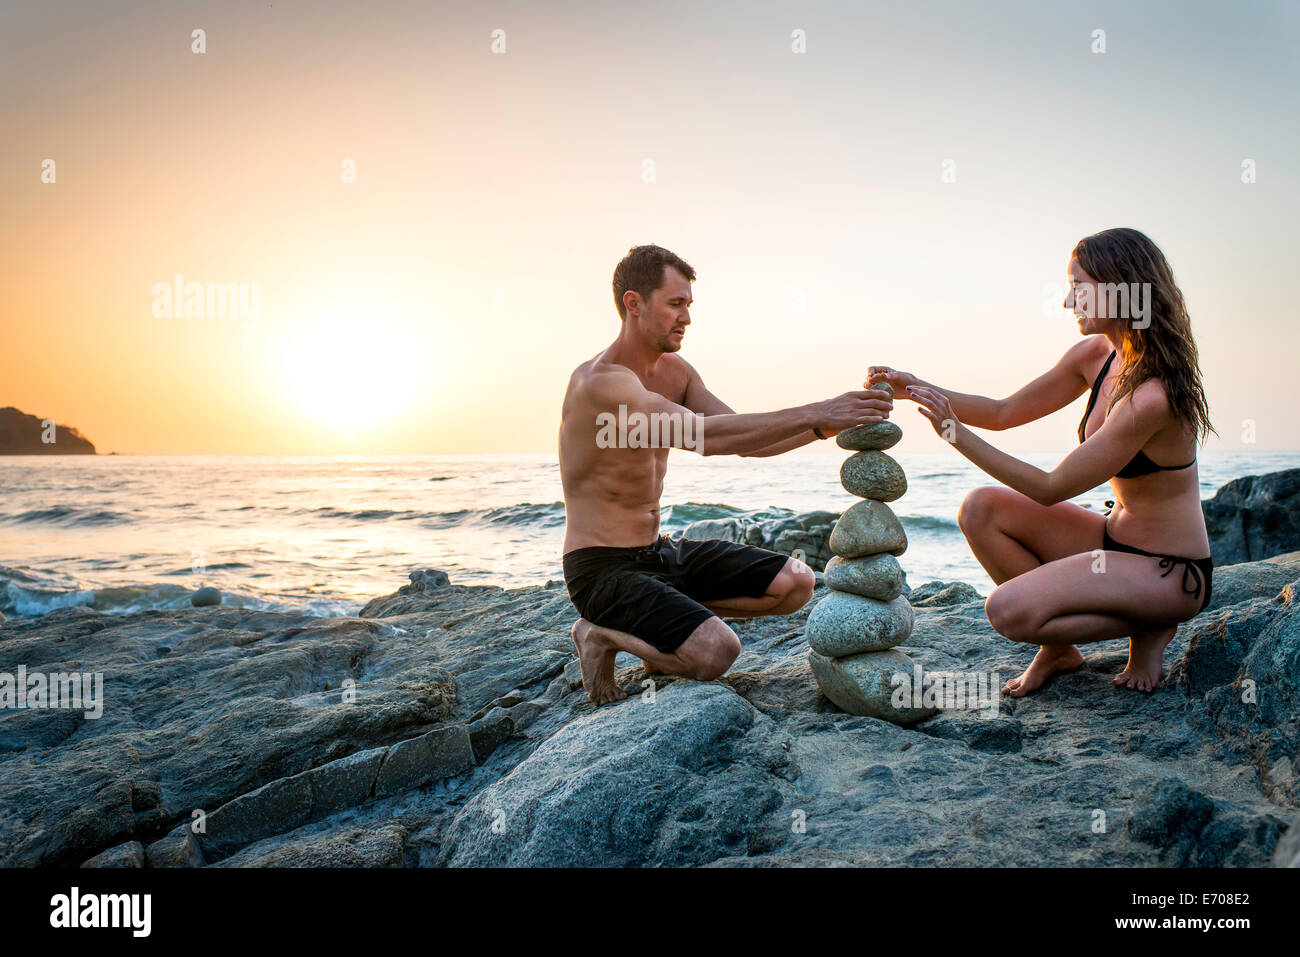 Couple on beach building tower from rocks - Stock Image